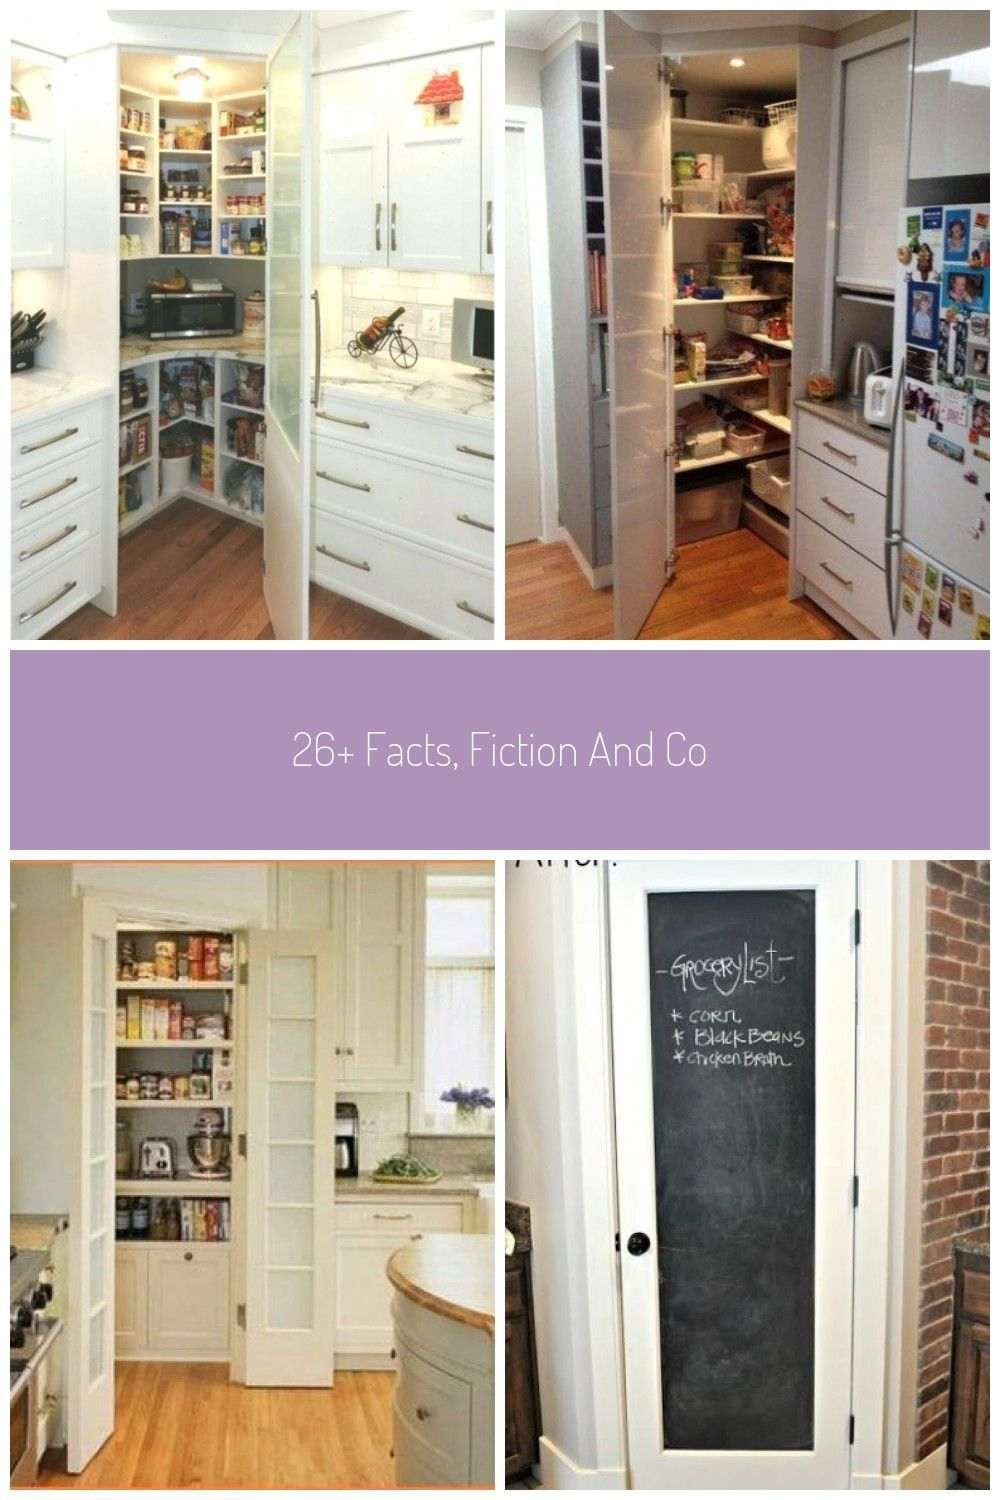 26+ Facts Fiction And Corner Pantry Ideas Small Kitchen 71 apikhome com Ecke co, #apikhome #...